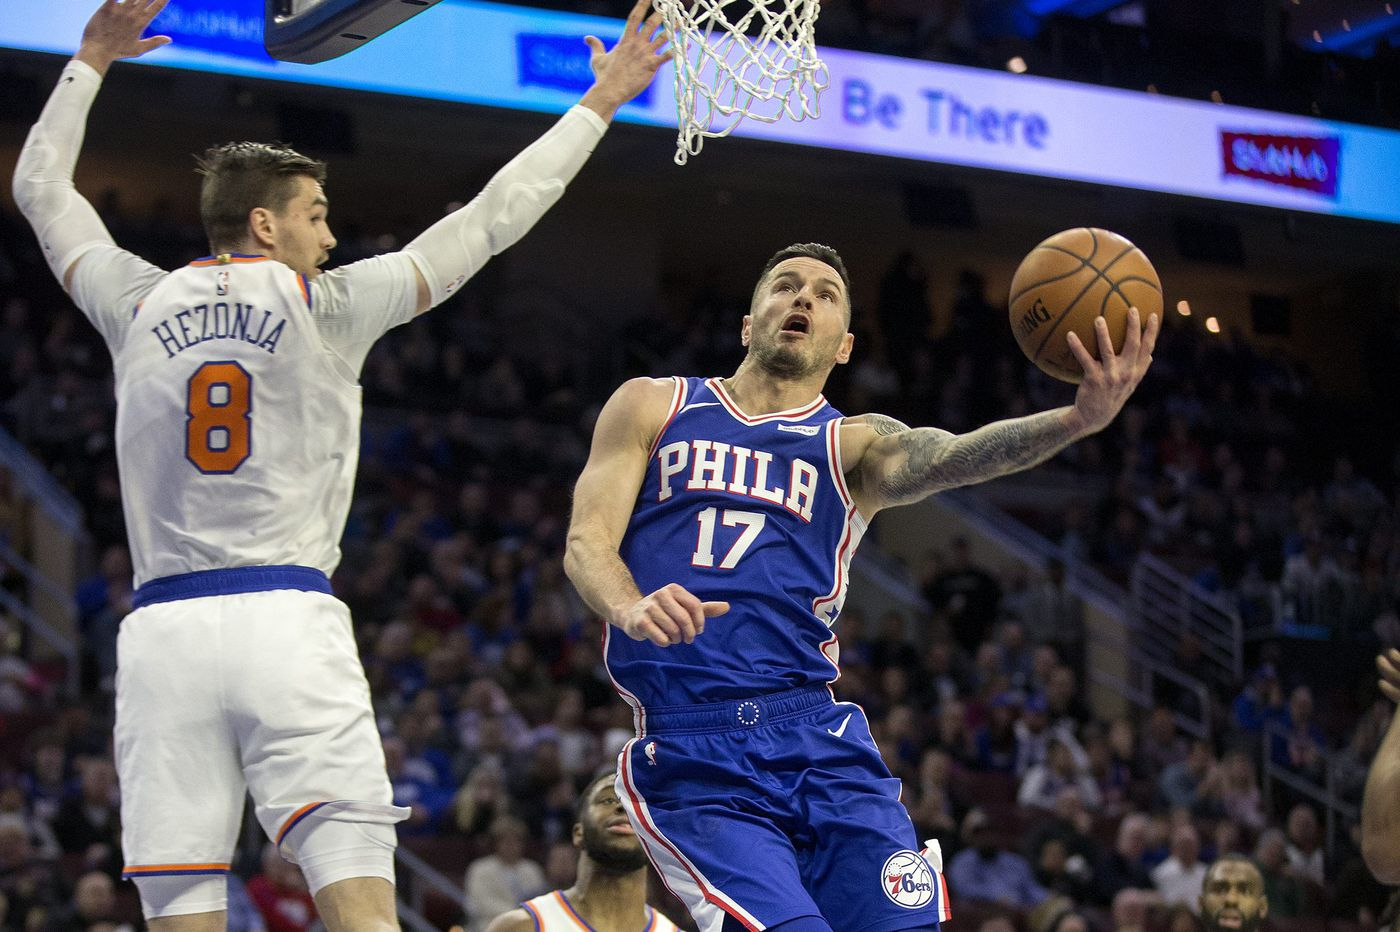 The Sixers punched the Knicks in the mouth, just as they should have